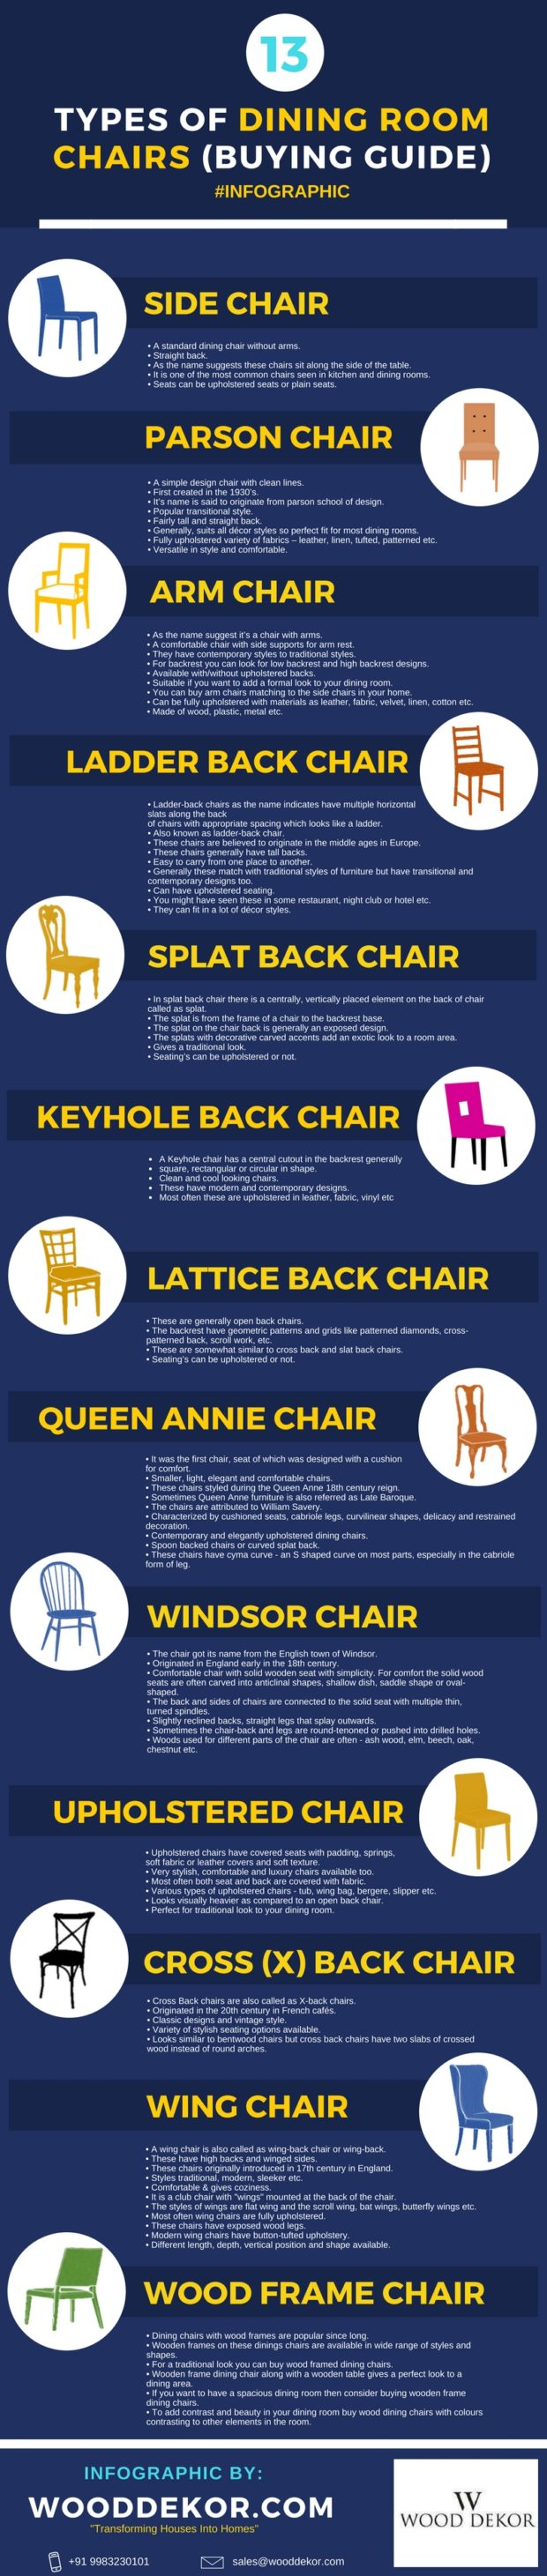 13 Types of Dining Chairs Buying Guide [An Infographic]